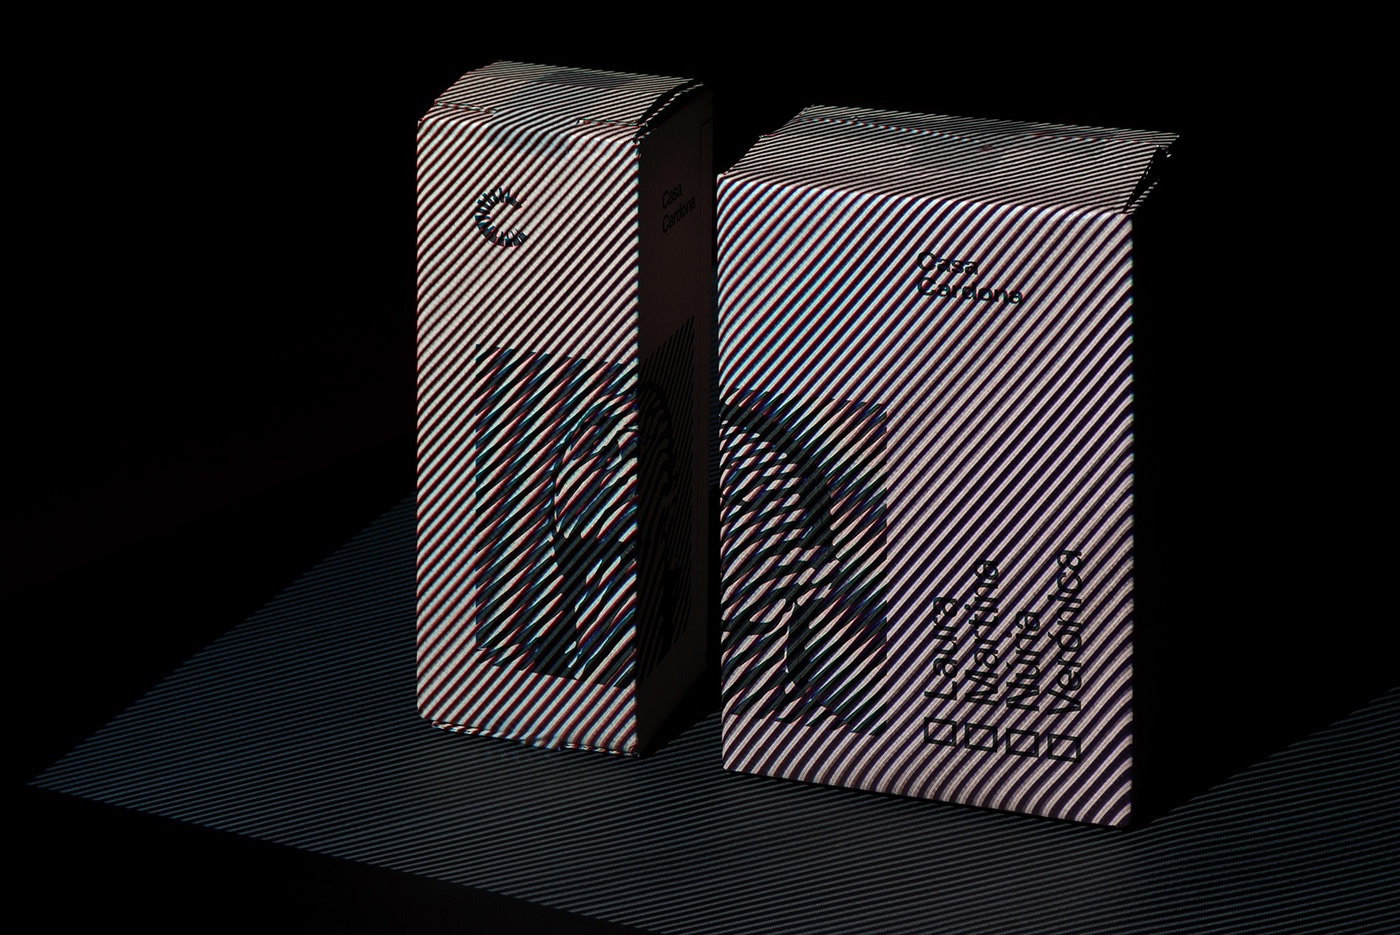 Casa Cardona wines. Group shot of the boxes with diagonal stripes lighting effects over